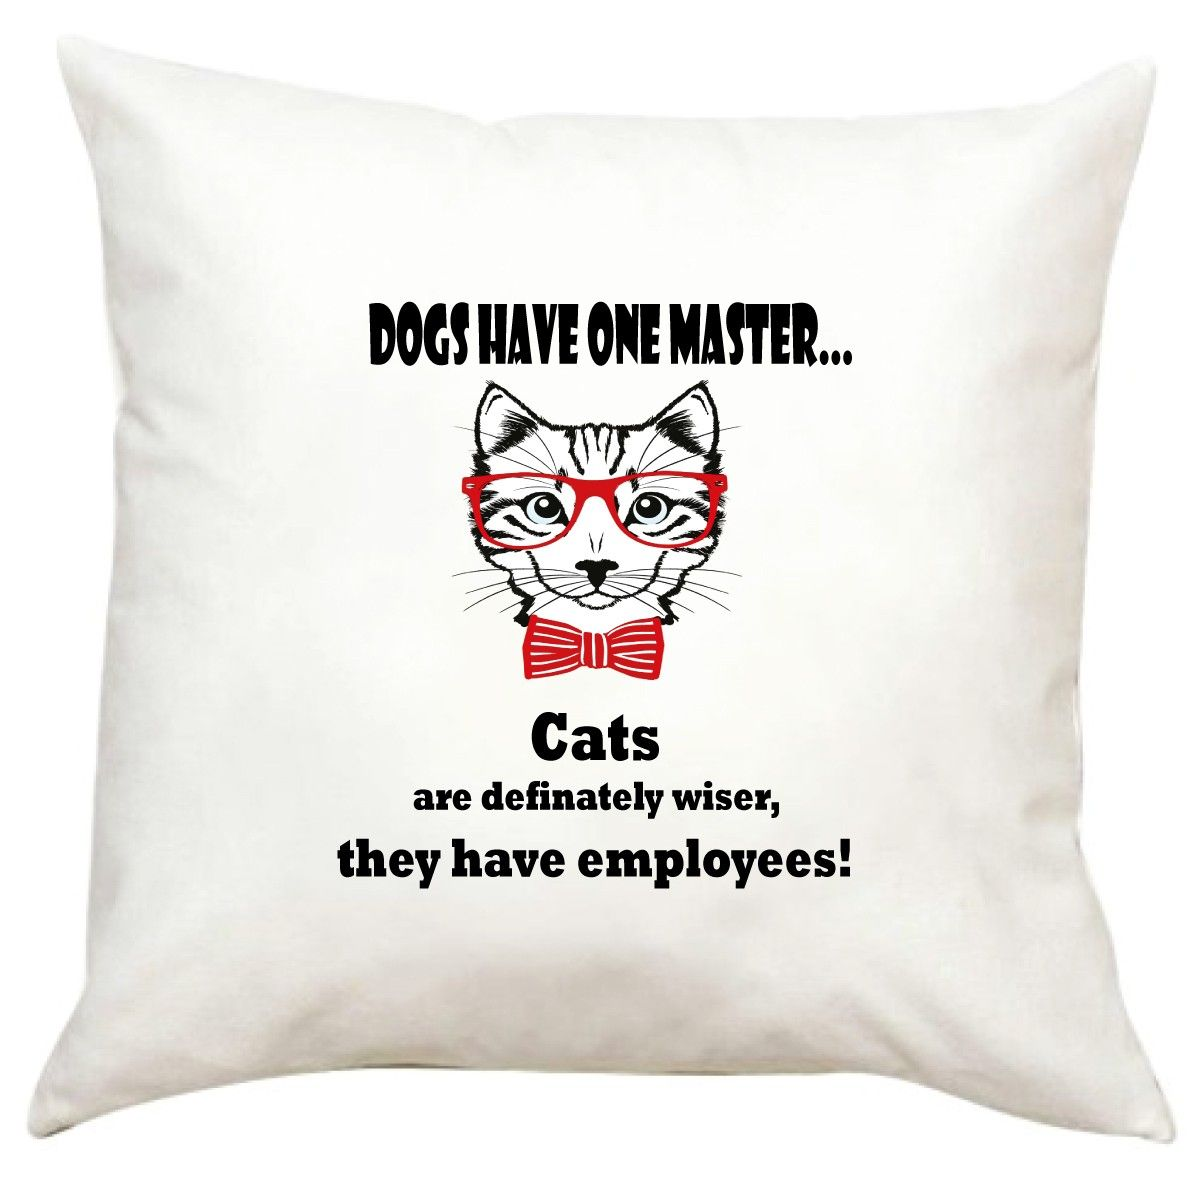 Funny white printed pillow with zipper easy to wash